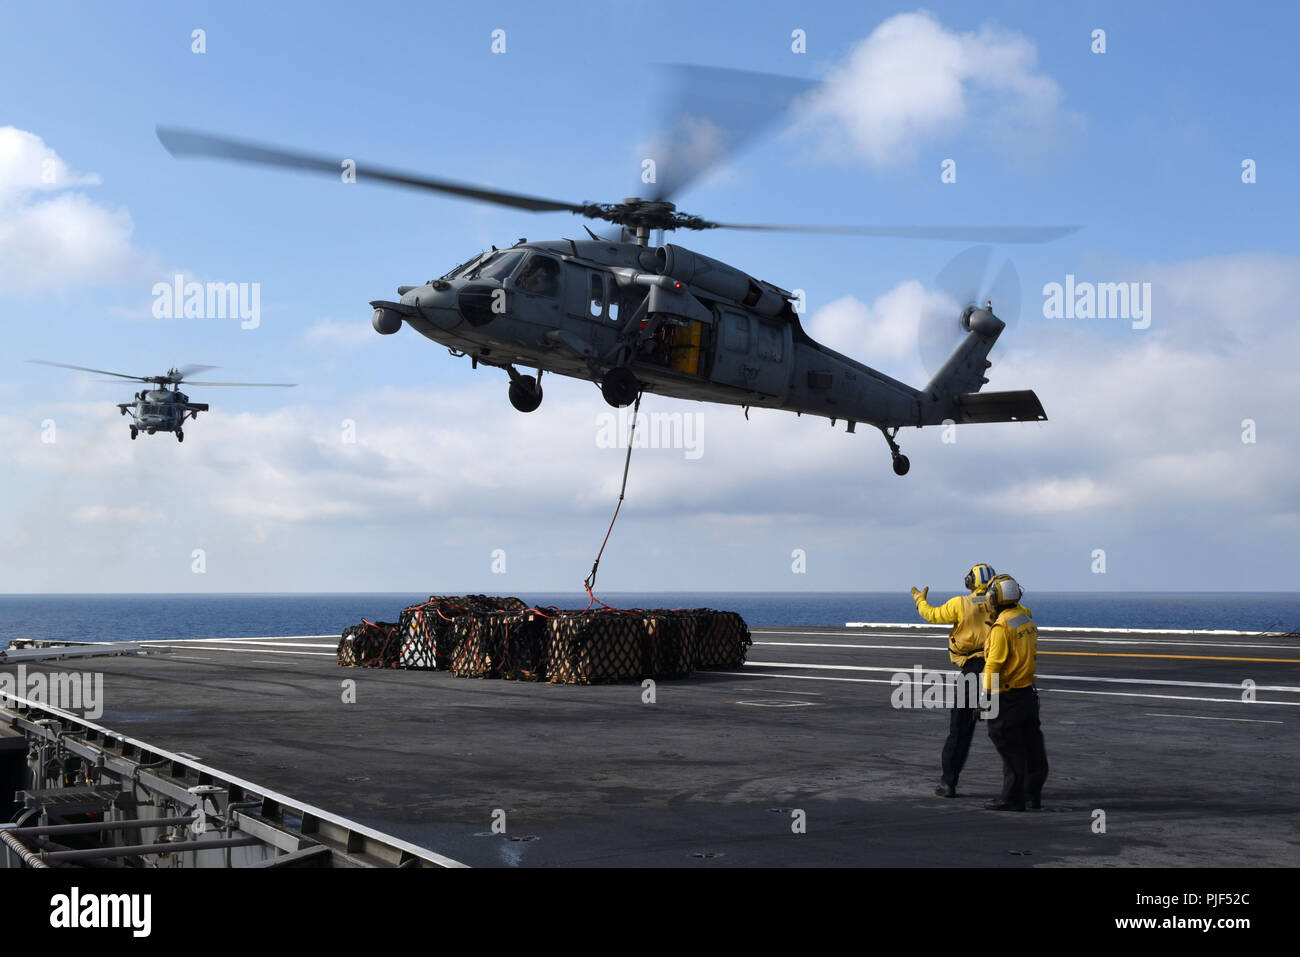 September 5, 2018 - Atlantic Ocean - ATLANTIC OCEAN (Sept. 5, 2018) Sailors direct an MH-60S Sea Hawk helicopter assigned to the Dragon Slayers of Helicopter Sea Combat Squadron (HSC) 11 on the flight deck of the Nimitz-class aircraft carrier USS Harry S. Truman (CVN 75) during a replenishment-at-sea with the fast combat support ship USNS Arctic (T-AOE-8), not pictured. Harry S. Truman is conducting sustainment operations in the Atlantic. (U.S. Navy photo by Mass Communication Specialist Seaman Maxwell Higgins/Released) 180905-N-MQ631-0271  US Navy via globallookpress.com (Credit Image: © Us N - Stock Image